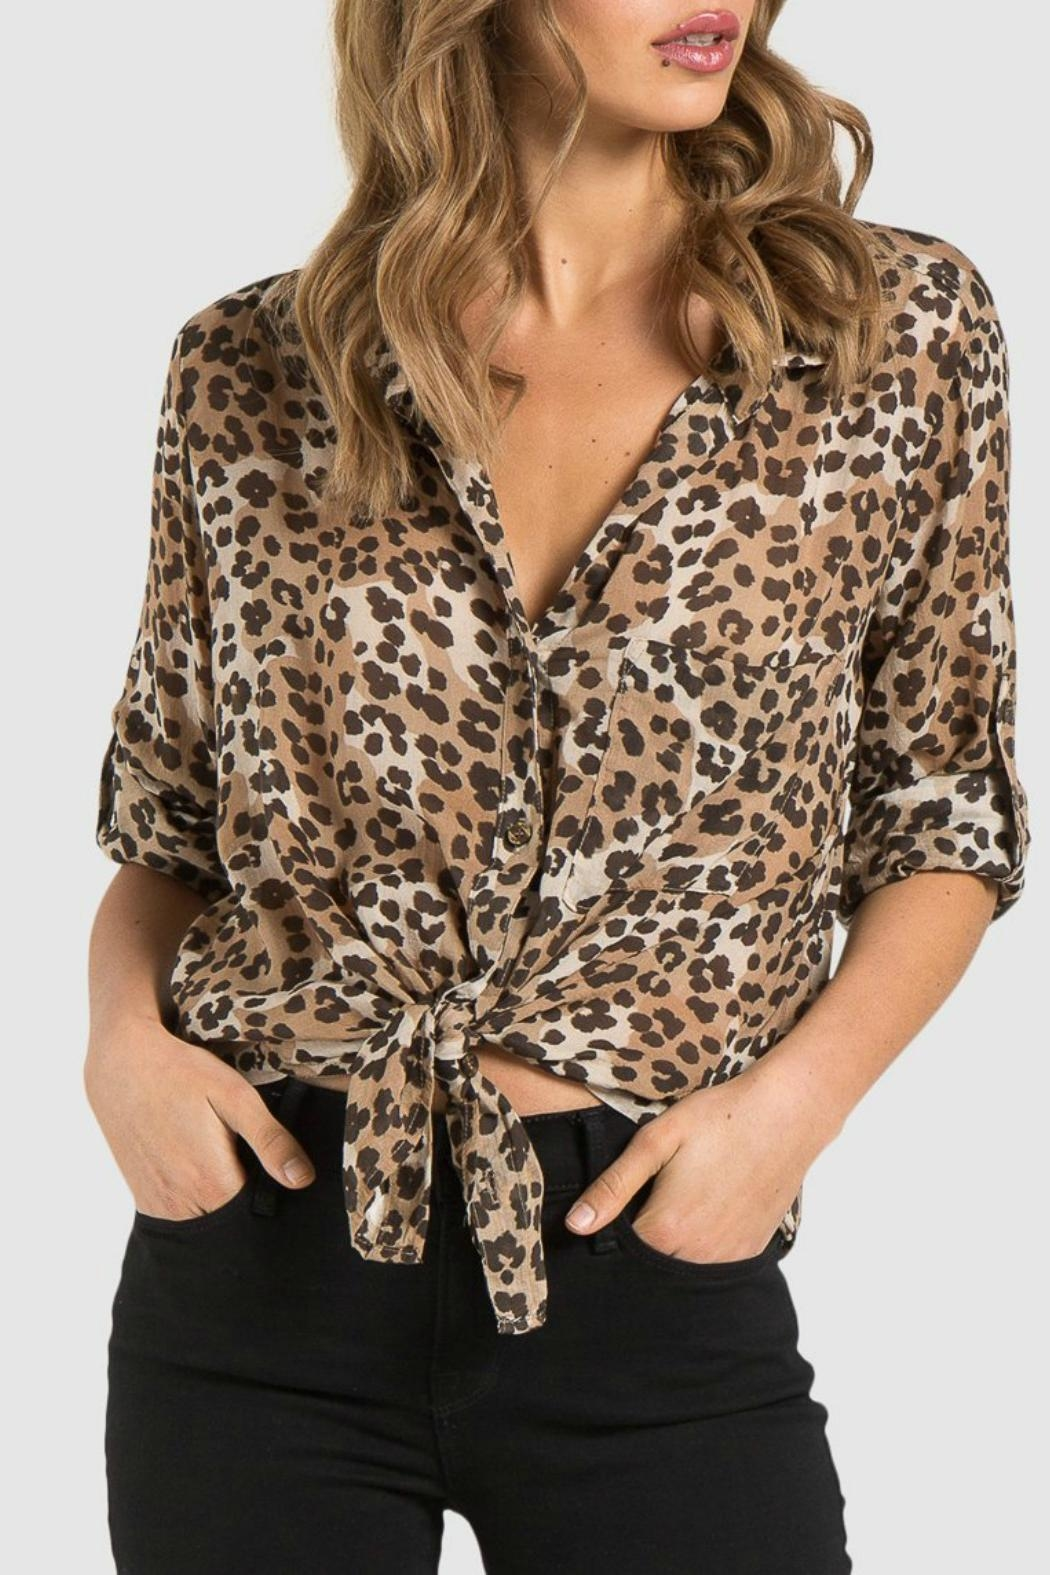 1a417fb0bea72 Bella Dahl Animal Print Shirt from Orange County by Jeanni Champagne ...